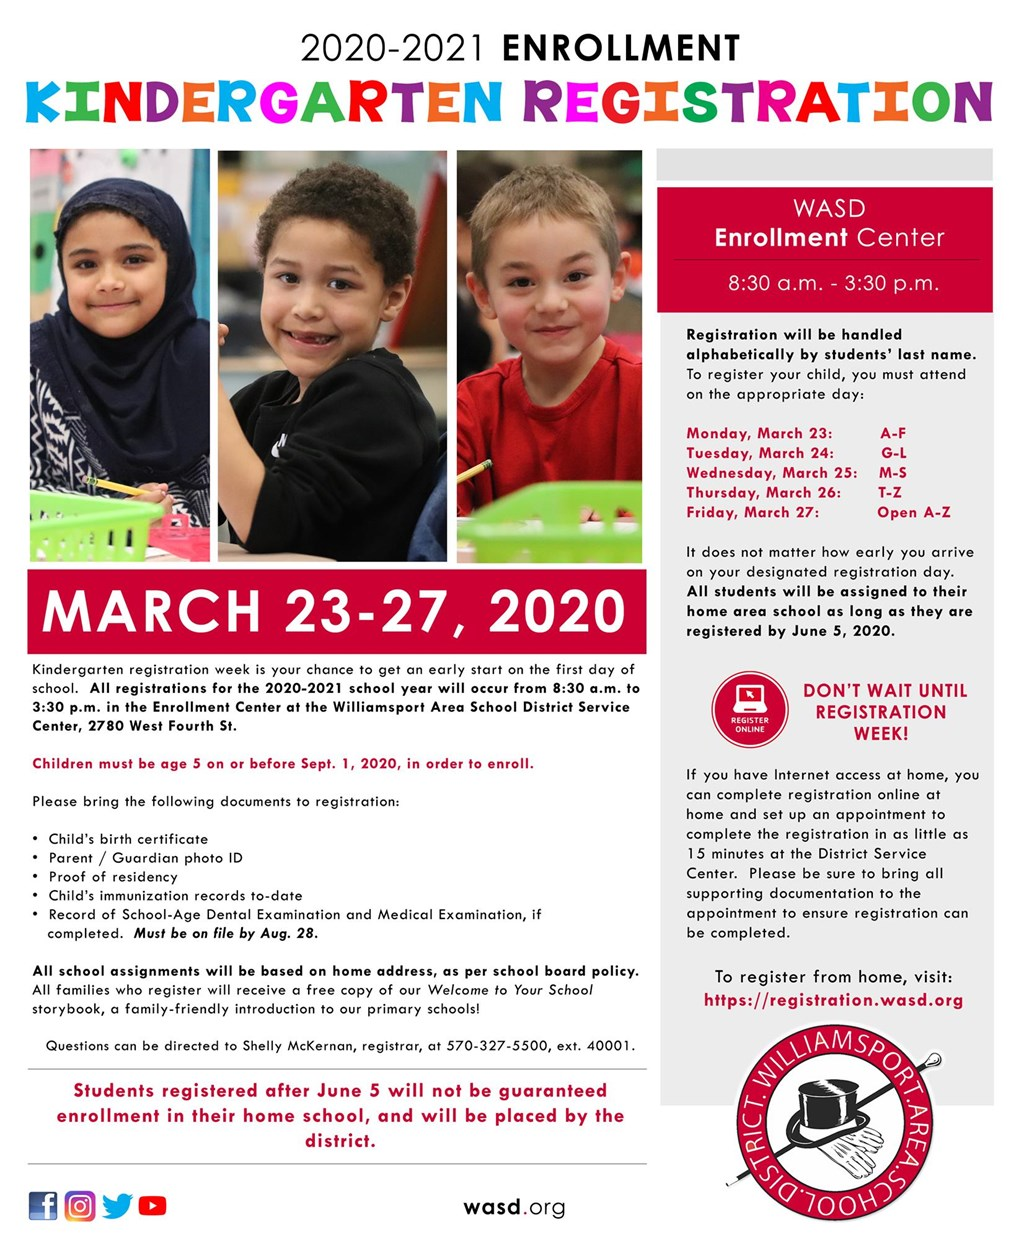 Kindergarten registration poster.